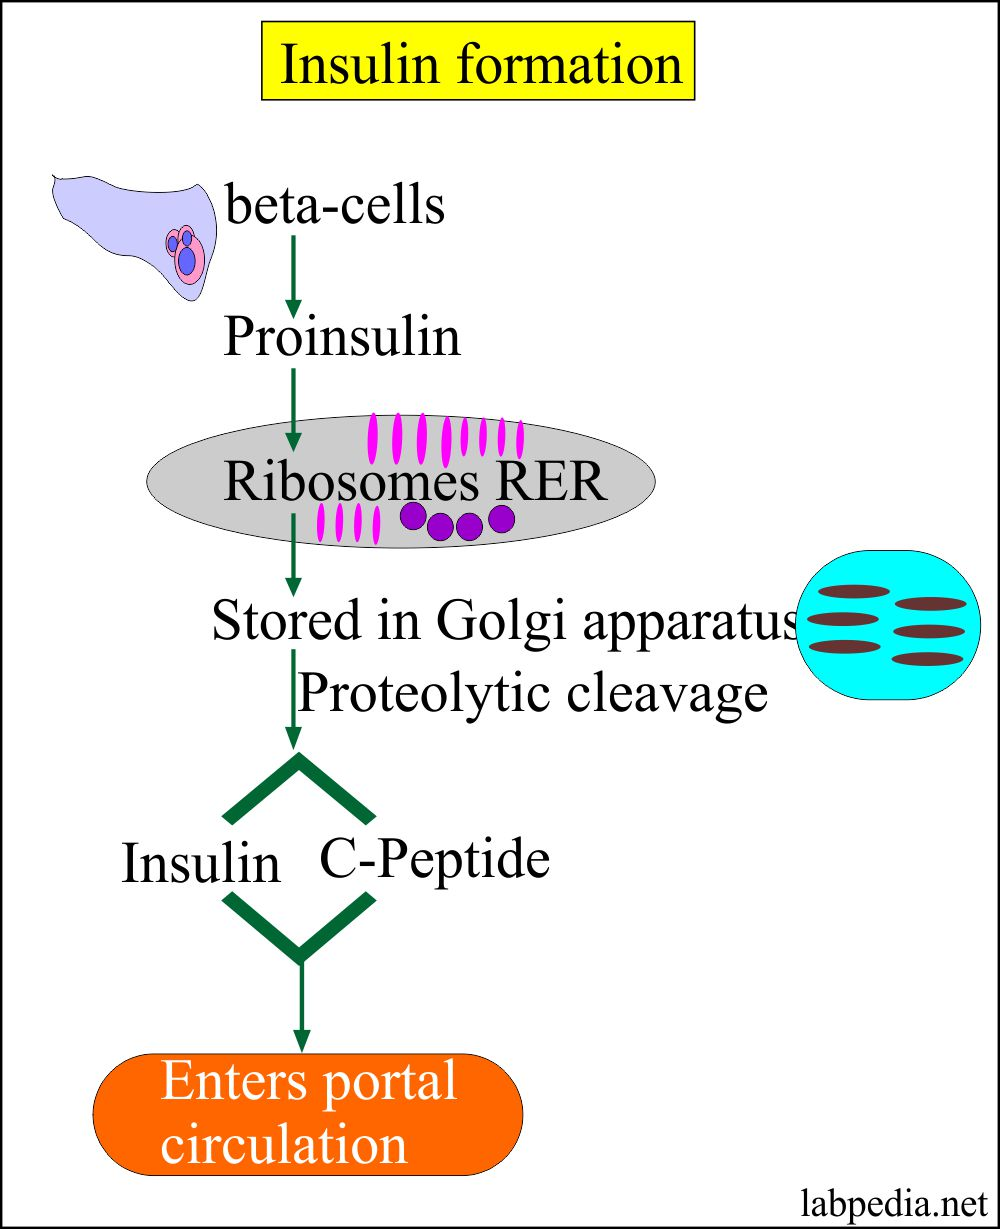 Insulin formation